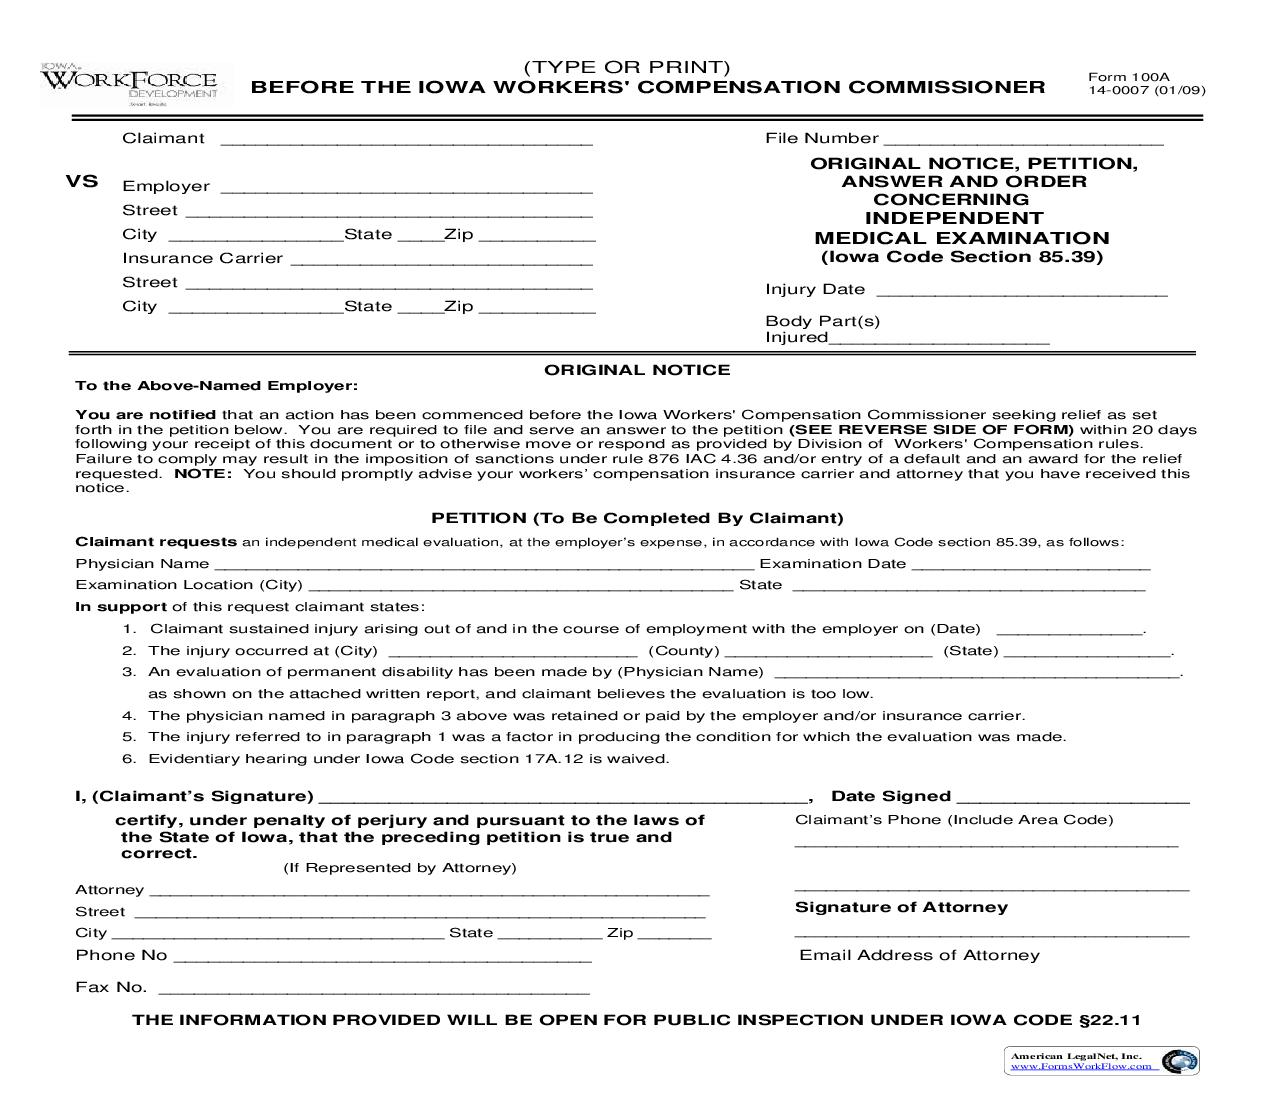 Original Notice Petition Answer And Order Concerning Independent Medical Examination {100A}   Pdf Fpdf Doc Docx   Iowa